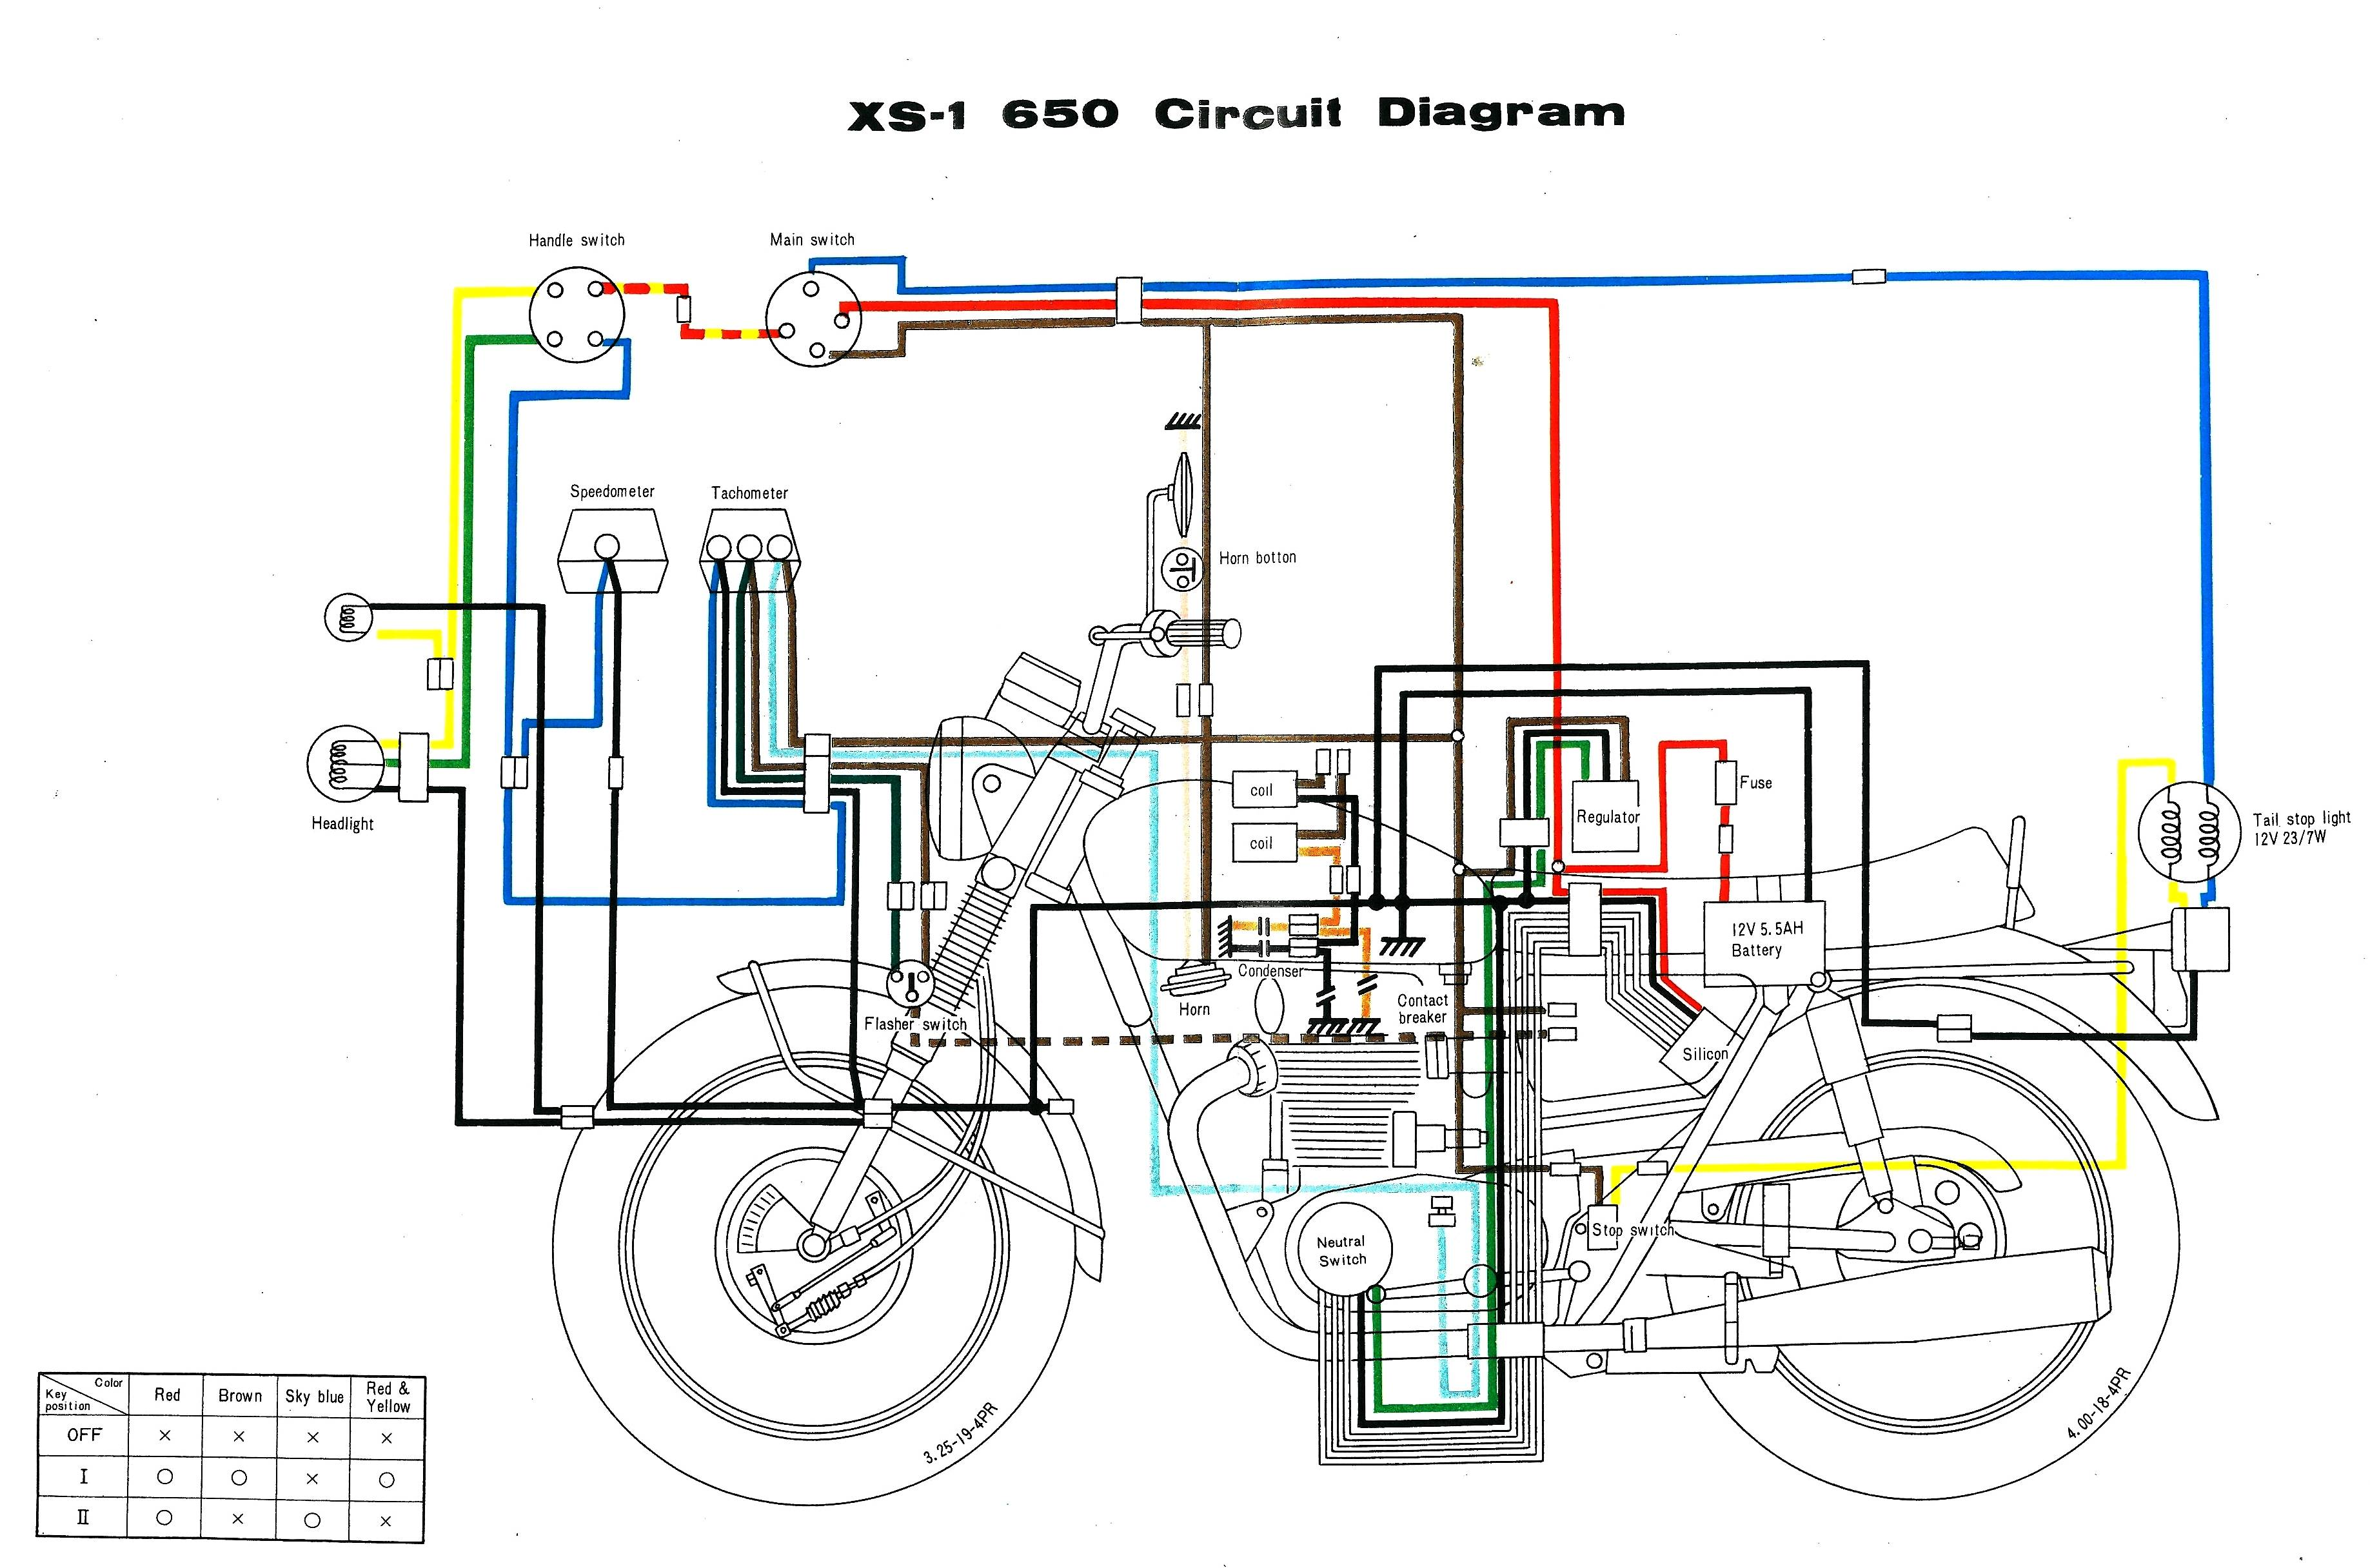 Wire Diagrams Auto Electrical Wiring Diagram 196 Spal Fans